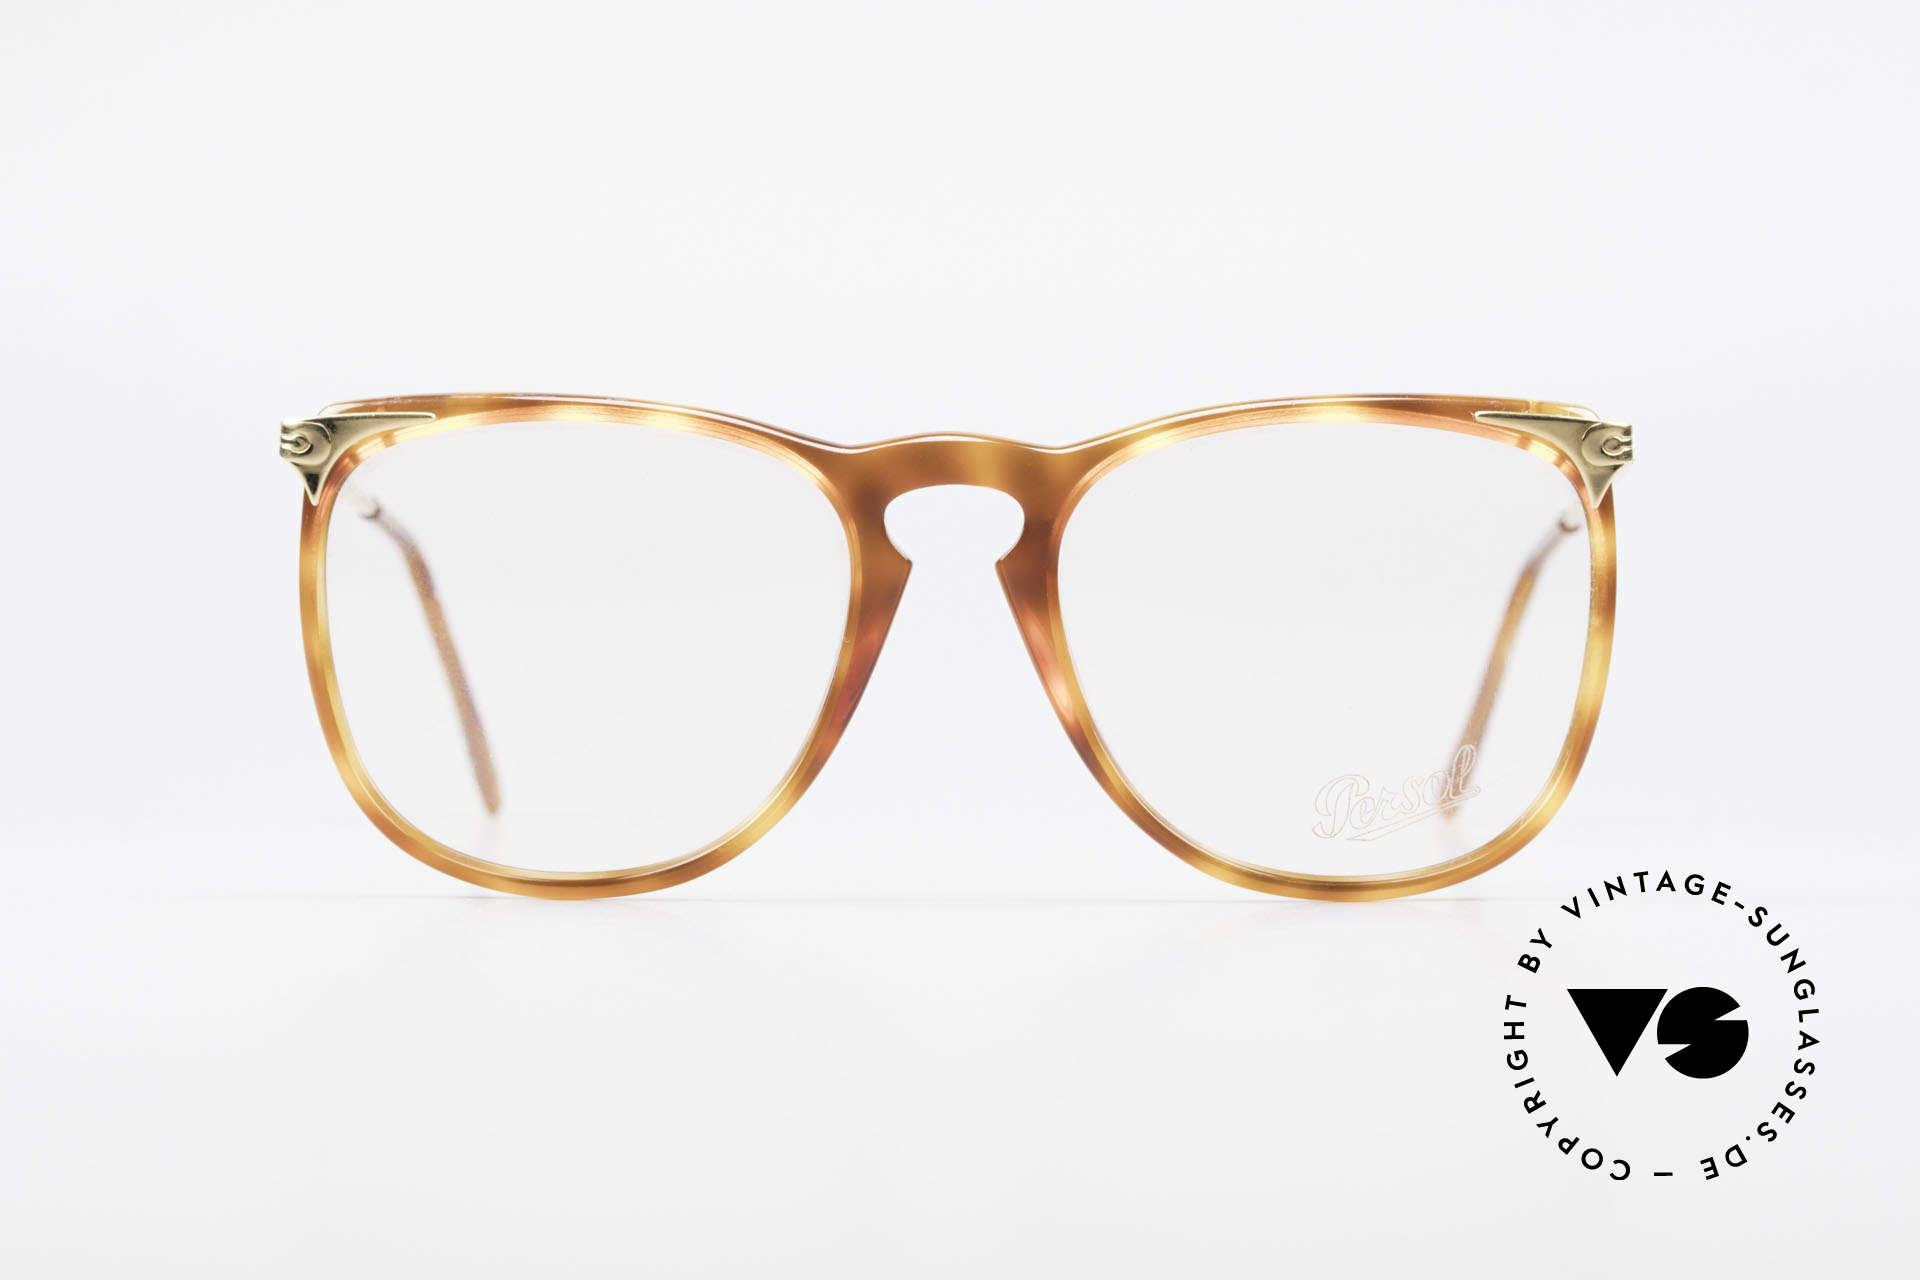 Persol Cellor 3 Ratti Old Vintage Eyeglasses 80's, high-quality spring temples (for a perfect fit), Made for Men and Women